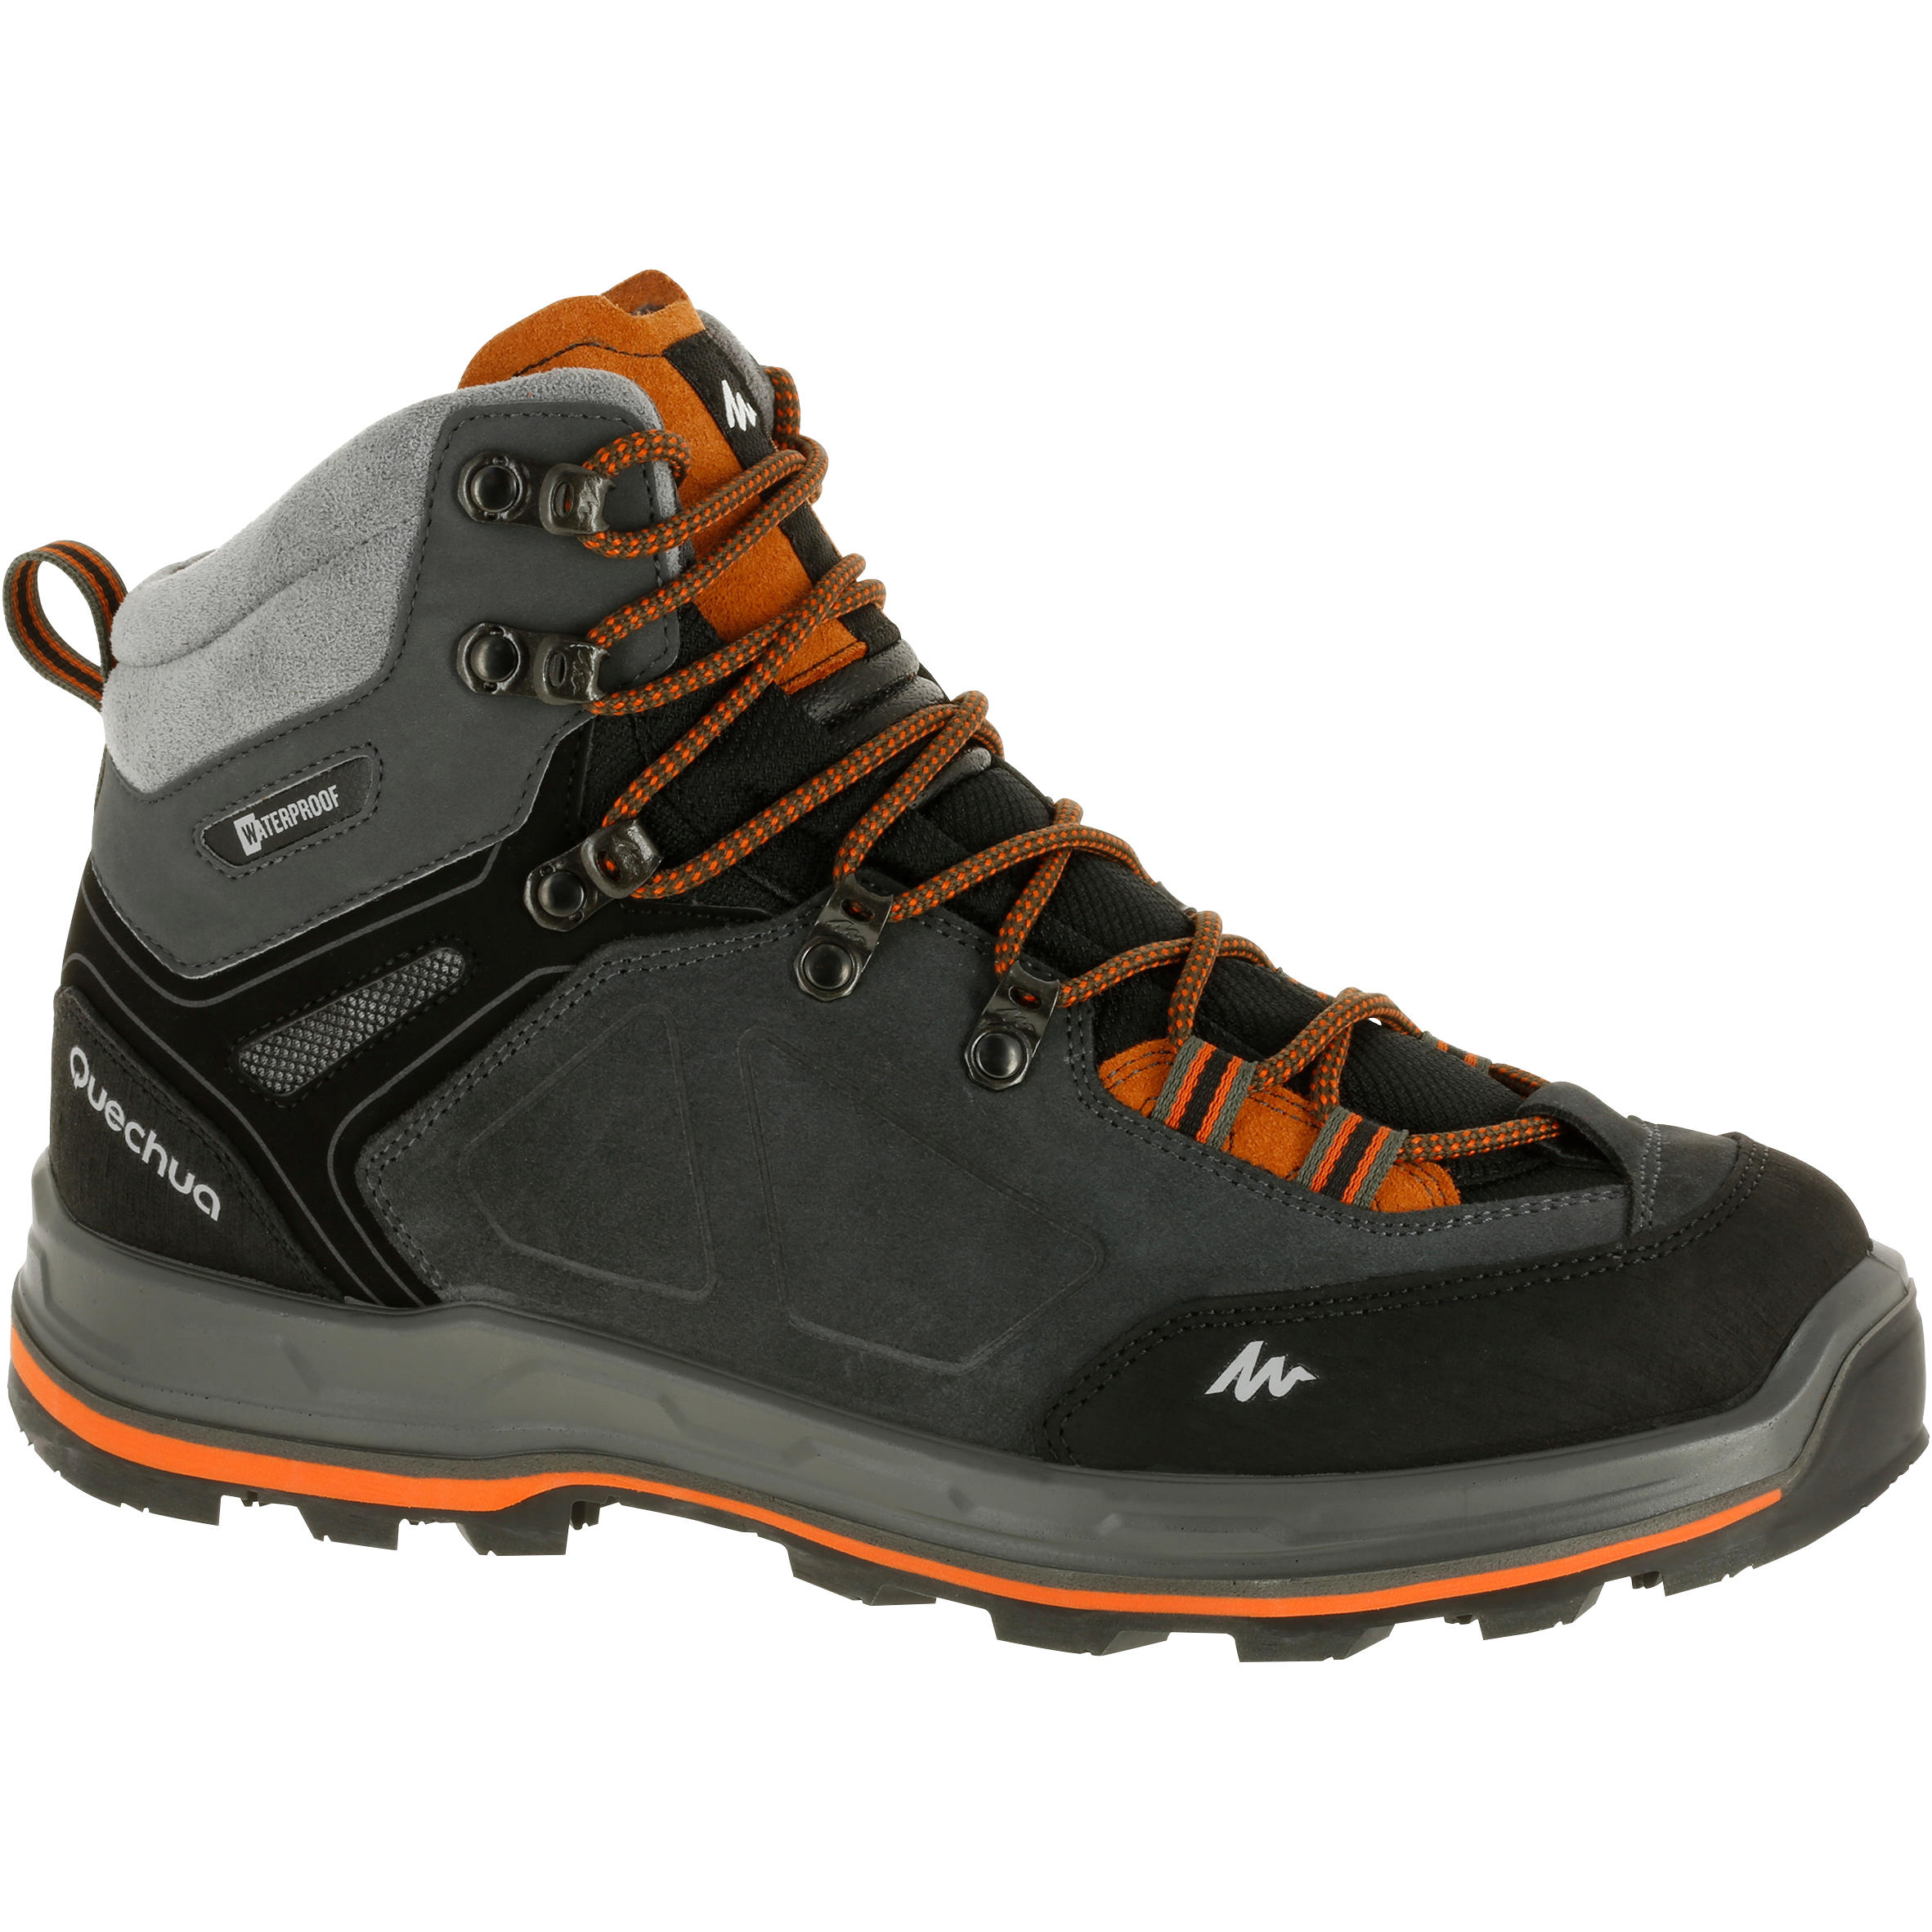 Men's TREK 100 Trekking Shoes